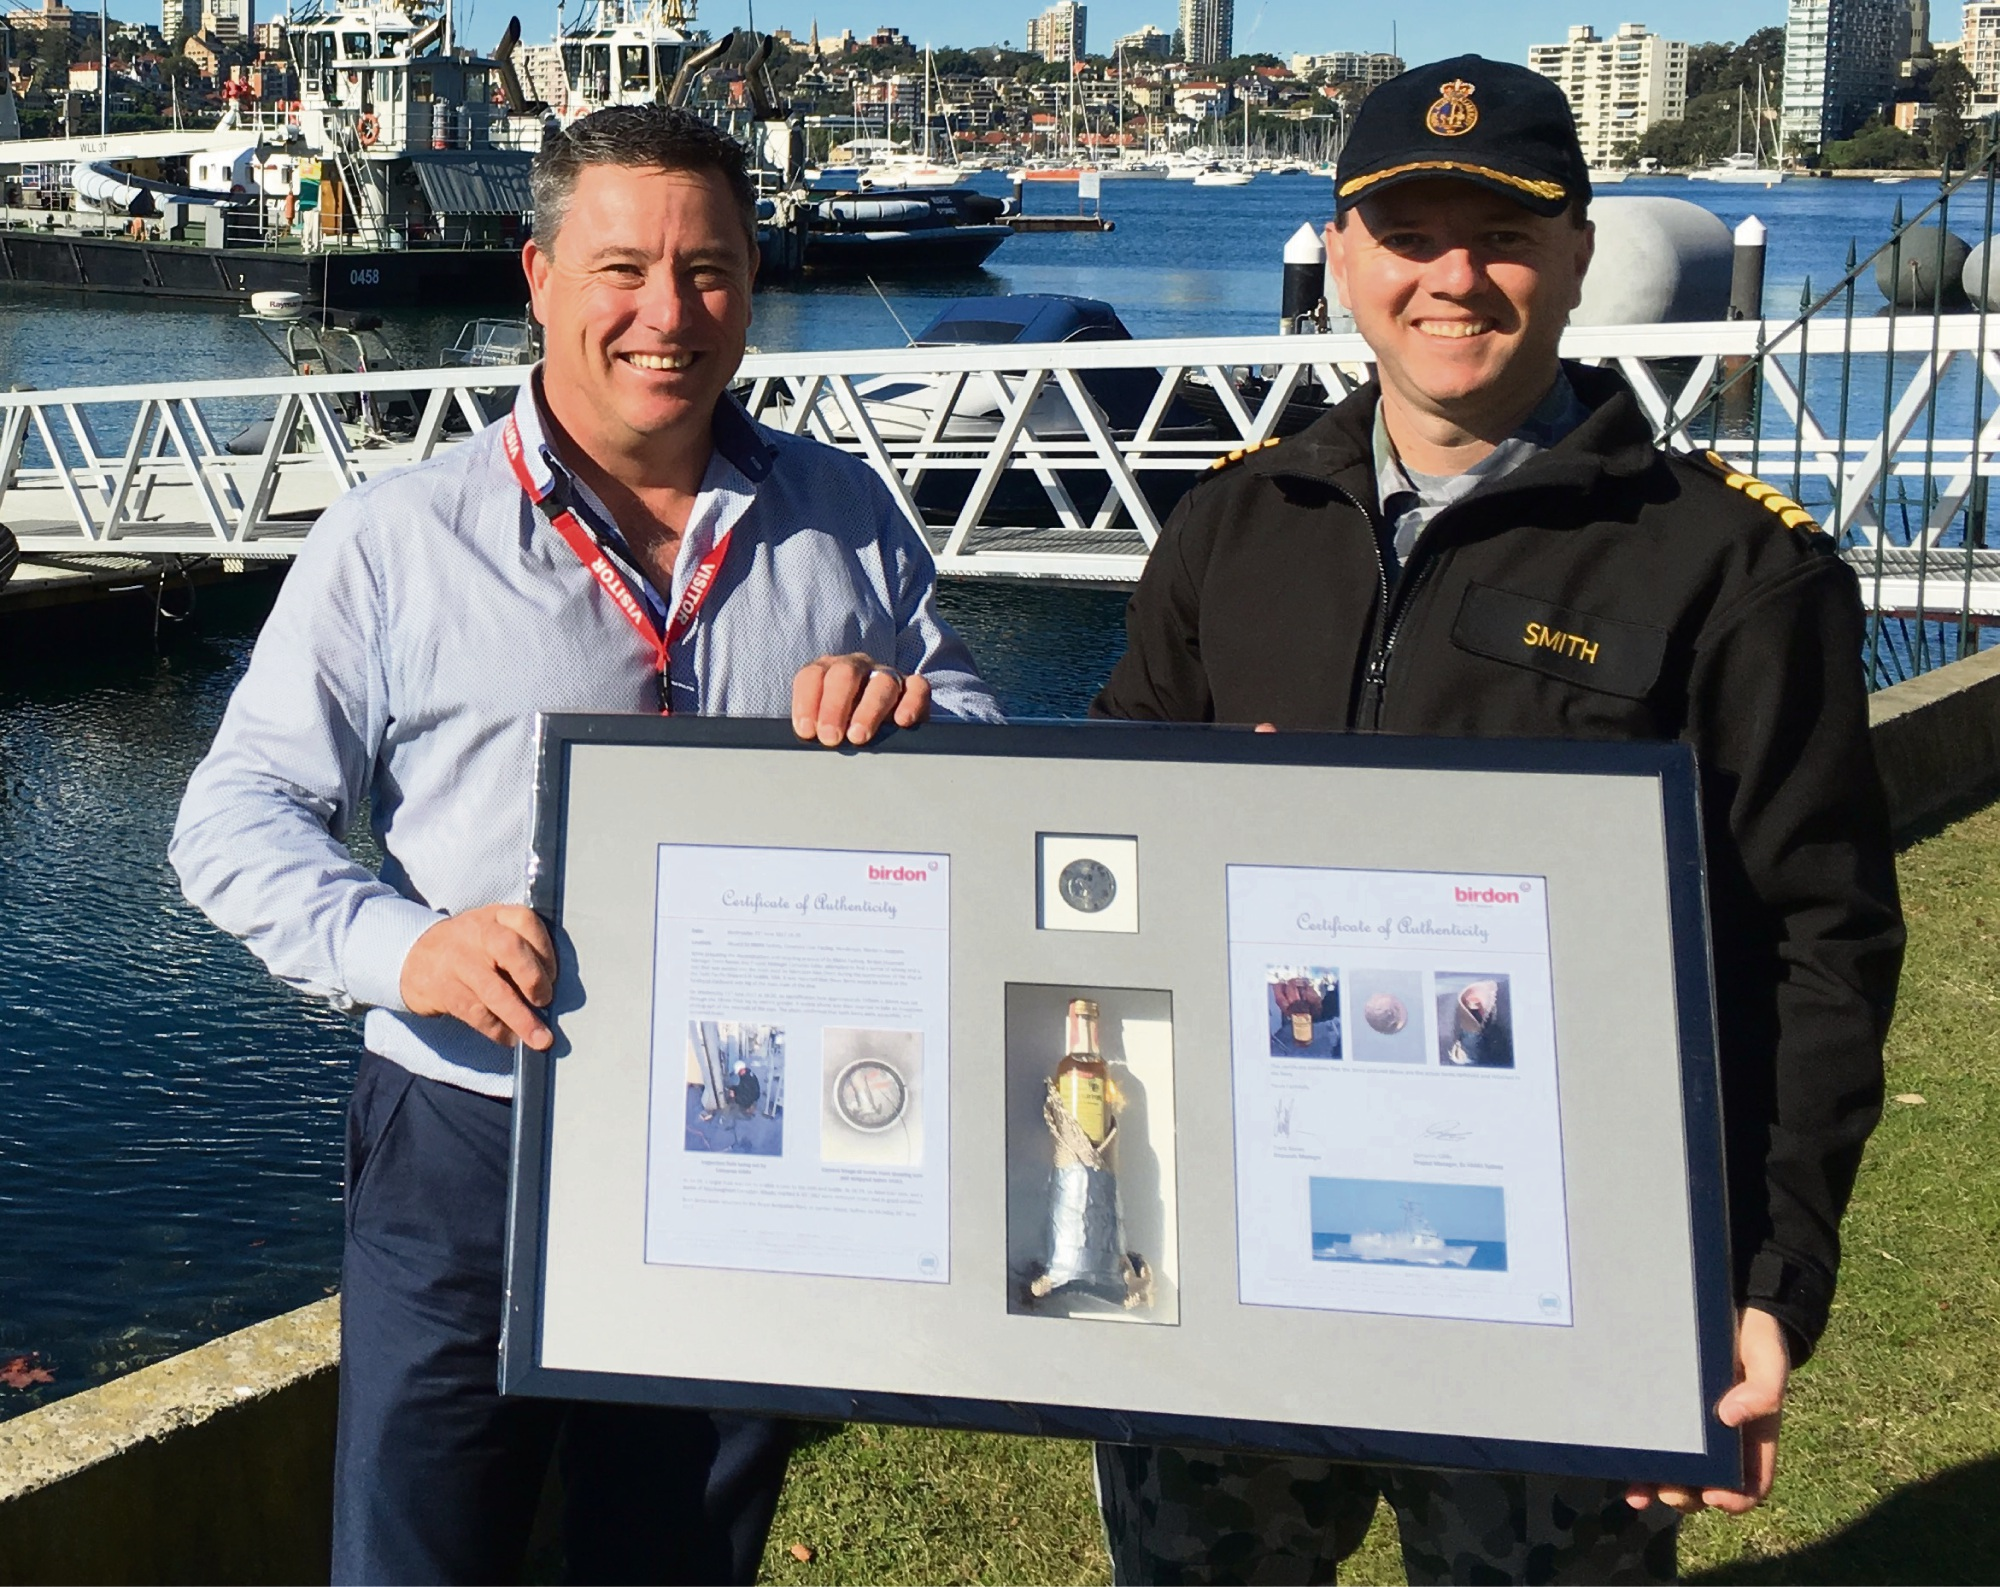 Birdon Group disposal manager Trent Raines presents the whisky bottle and coin display to Captain Bradley Smith at Garden Island in Sydney earlier this week.